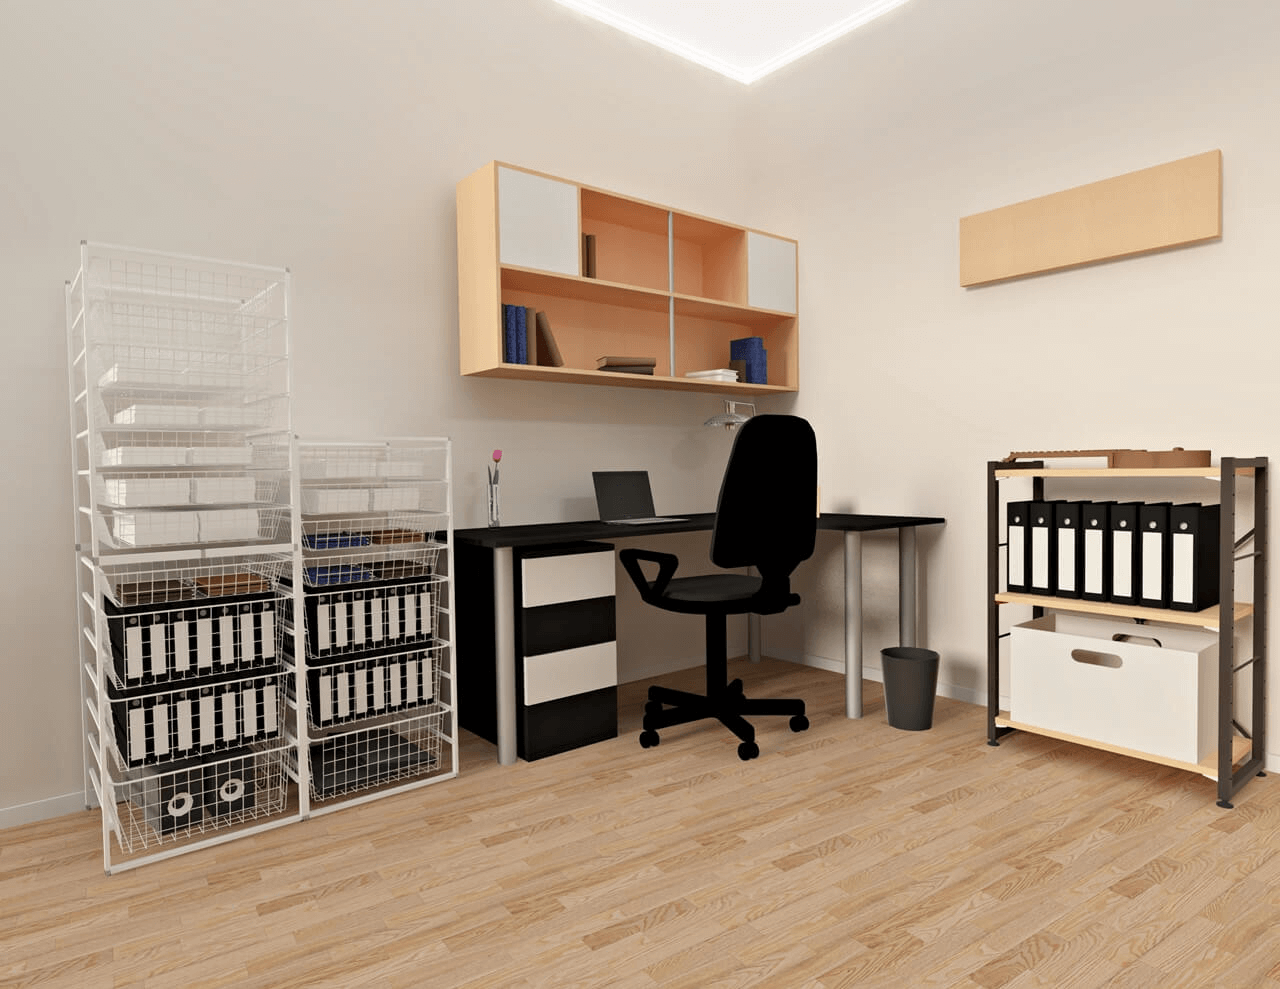 metal-wire-baskets-systems-for-personal-home-office